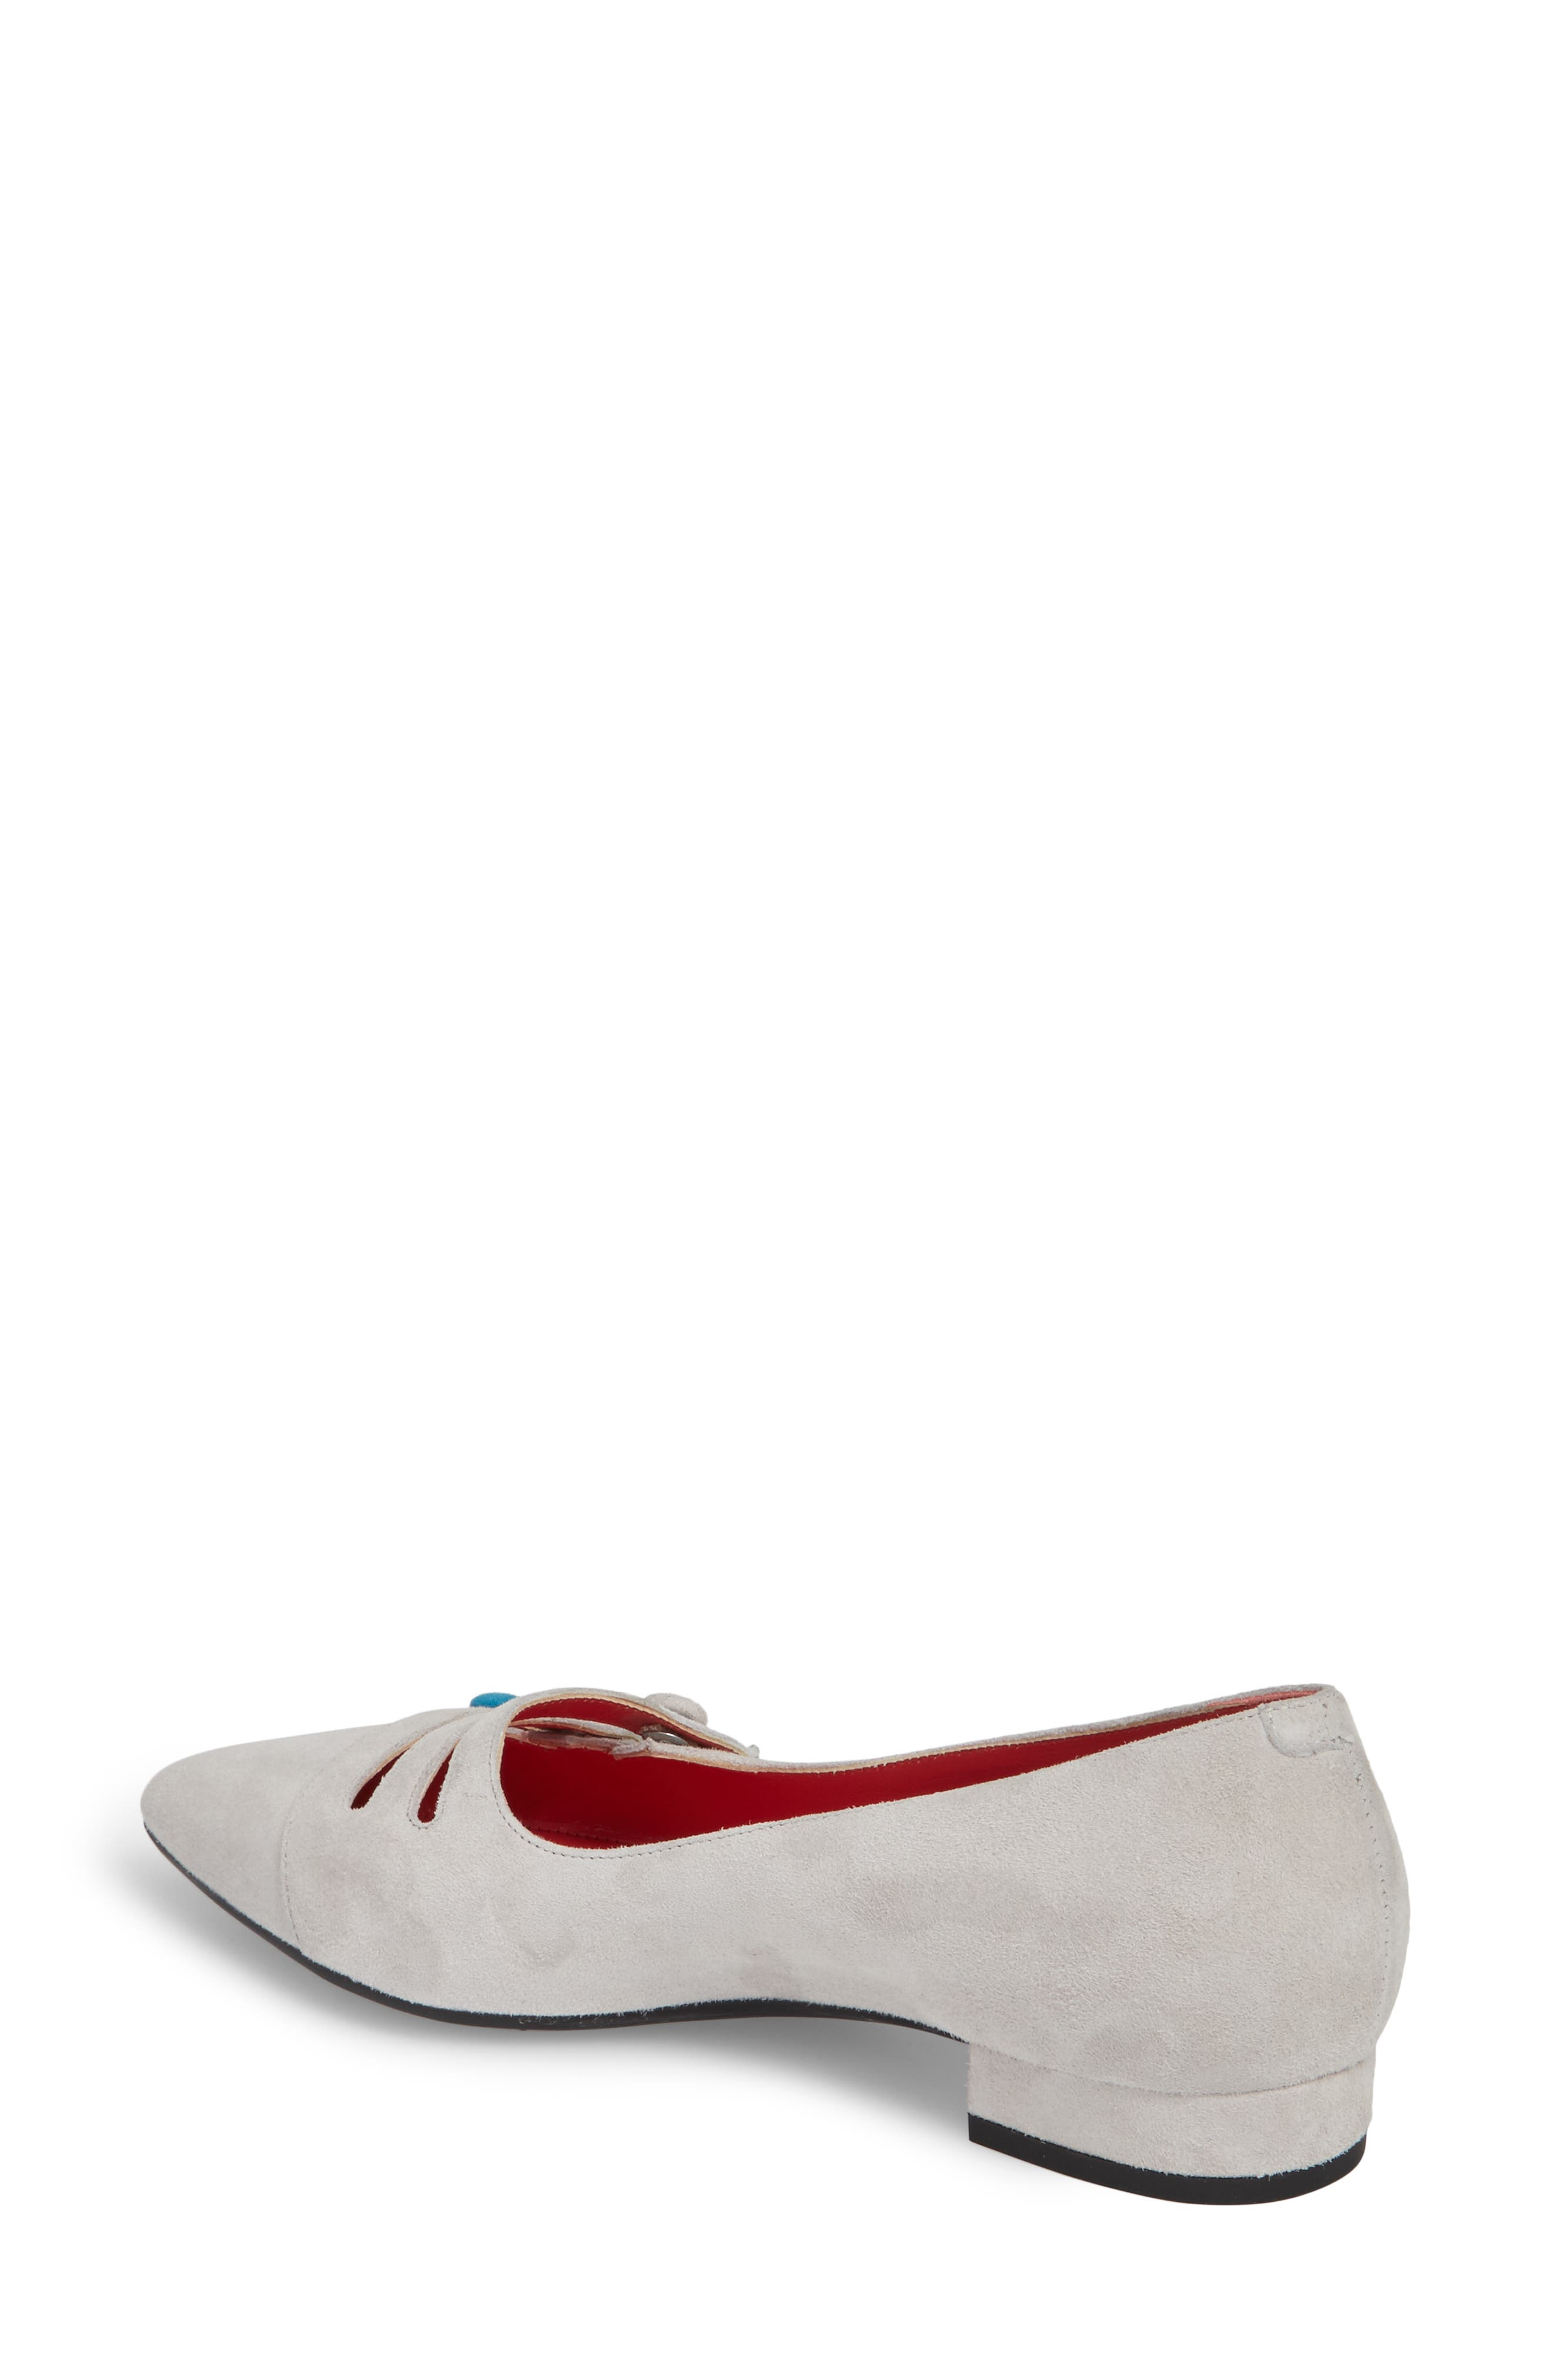 Janet Flat,                             Alternate thumbnail 2, color,                             Sasso Suede